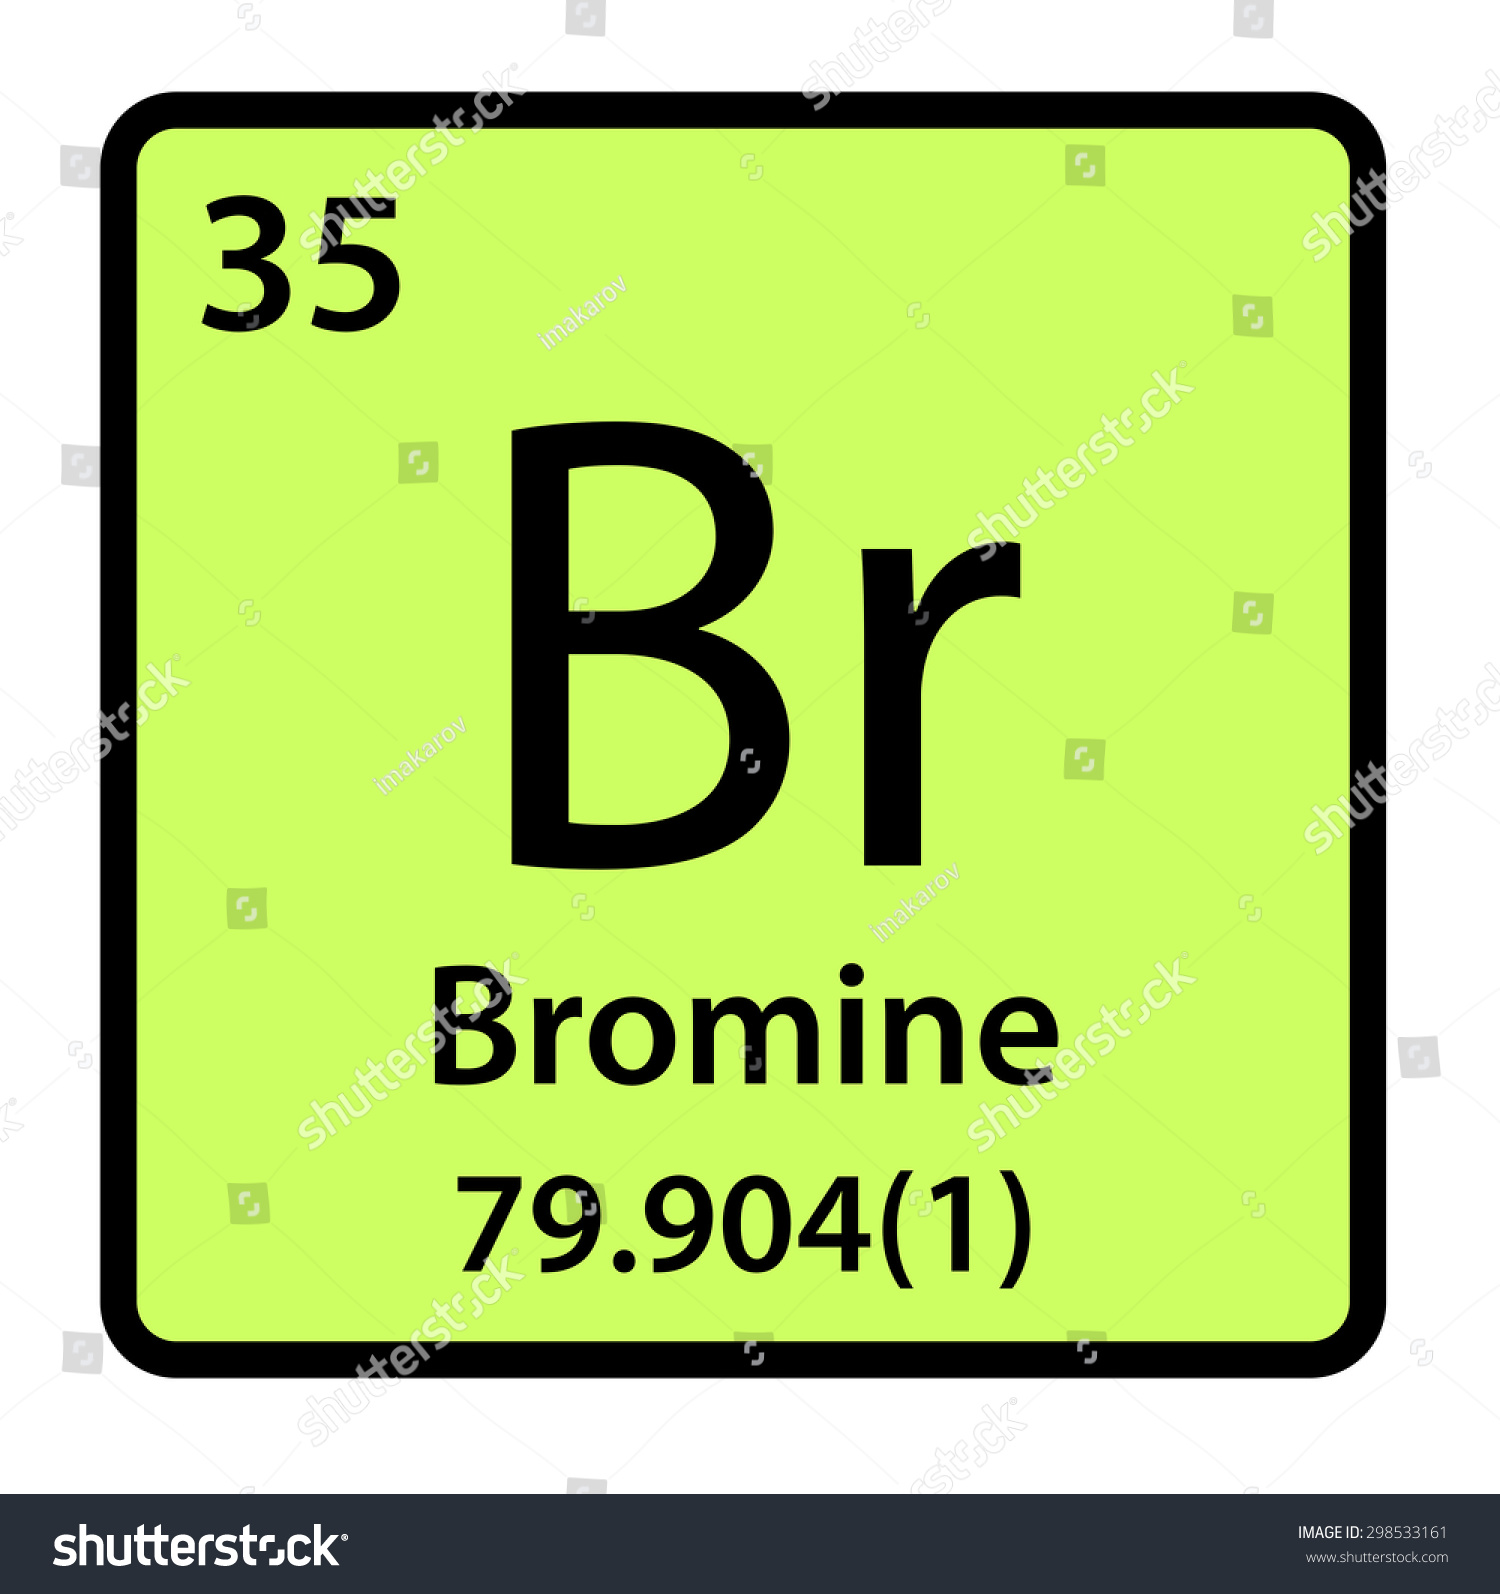 Element bromine periodic table stock illustration 298533161 element bromine of the periodic table gamestrikefo Gallery